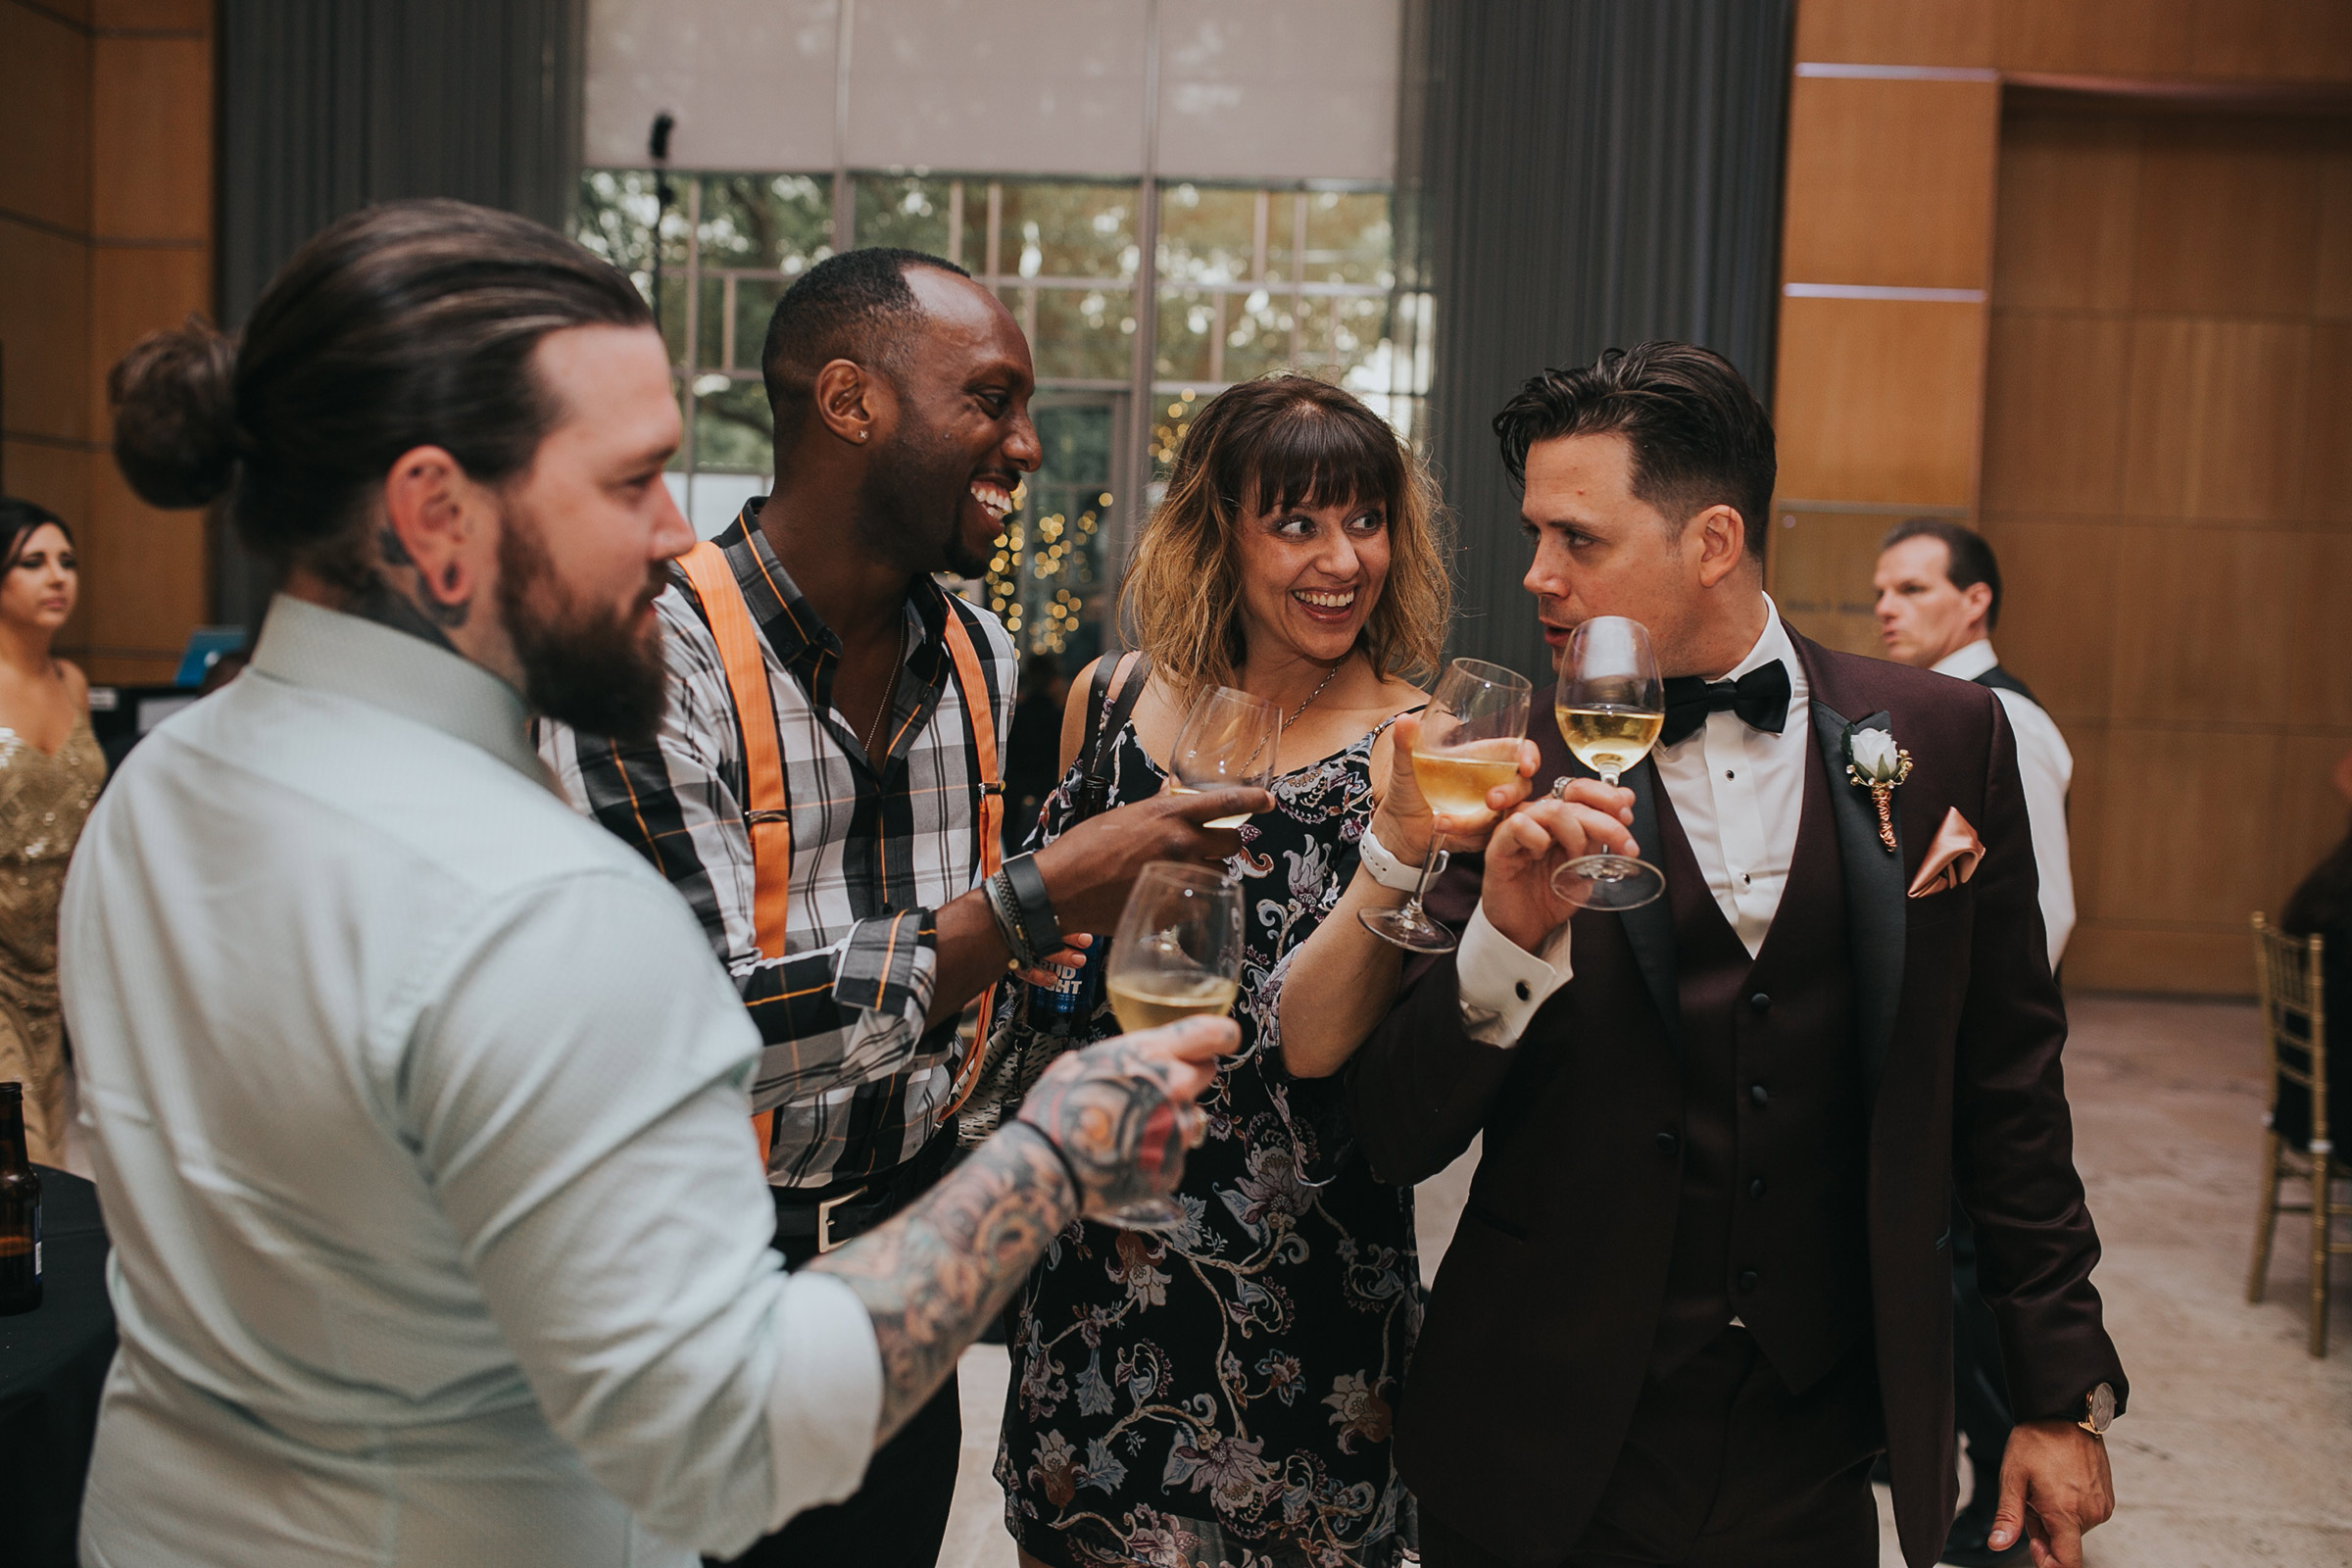 groom-cheersing-with-guests-and-posing-desmoines-iowa-art-center-raelyn-ramey-photography.jpg